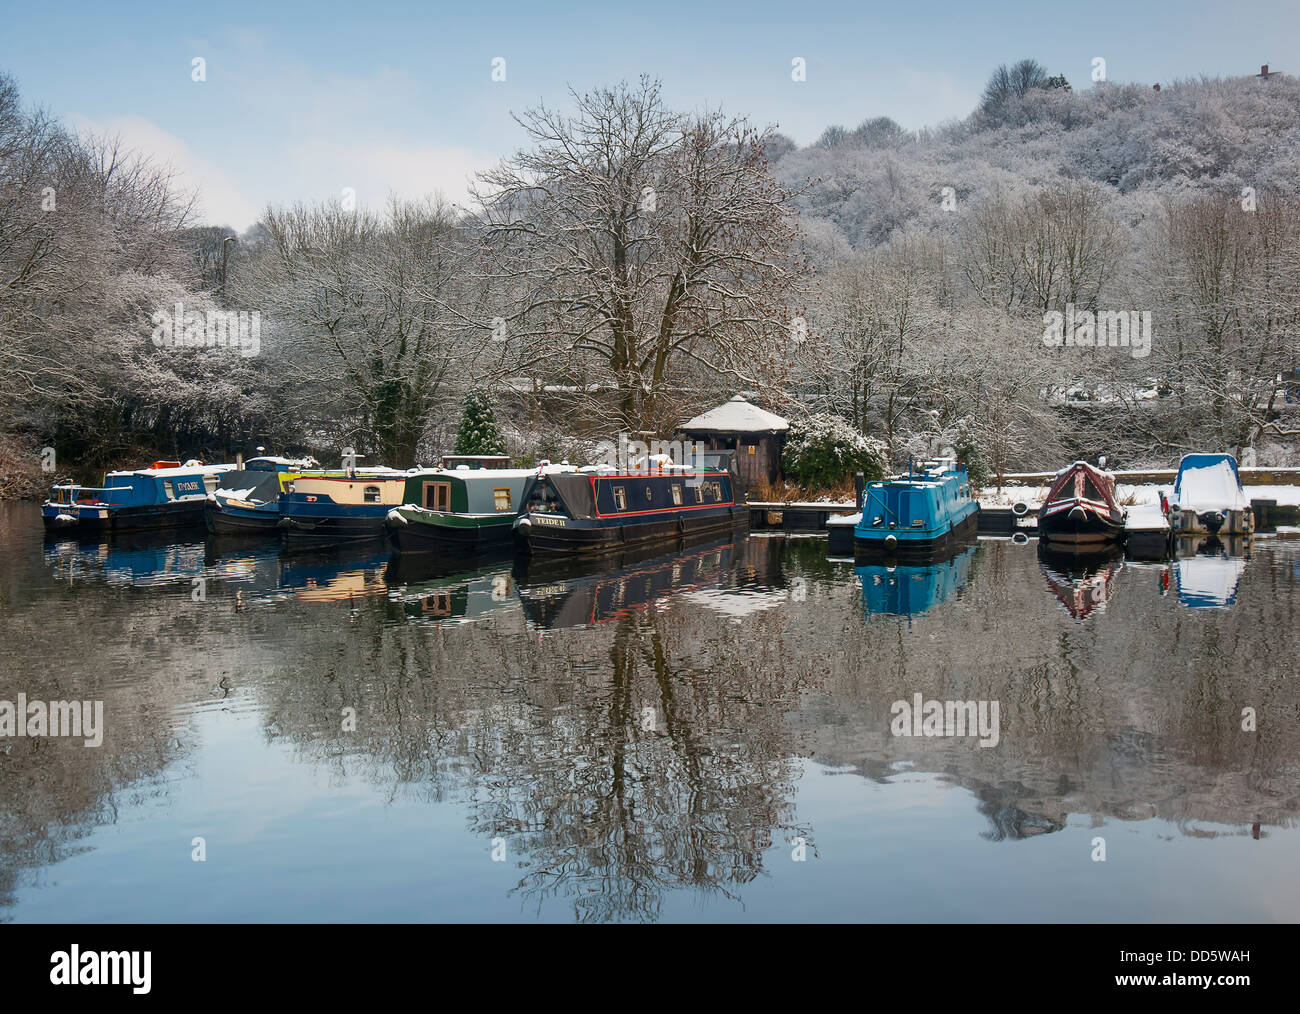 Canal narrowboats at their moorings on a clear cold winters day in yorkshire - Stock Image